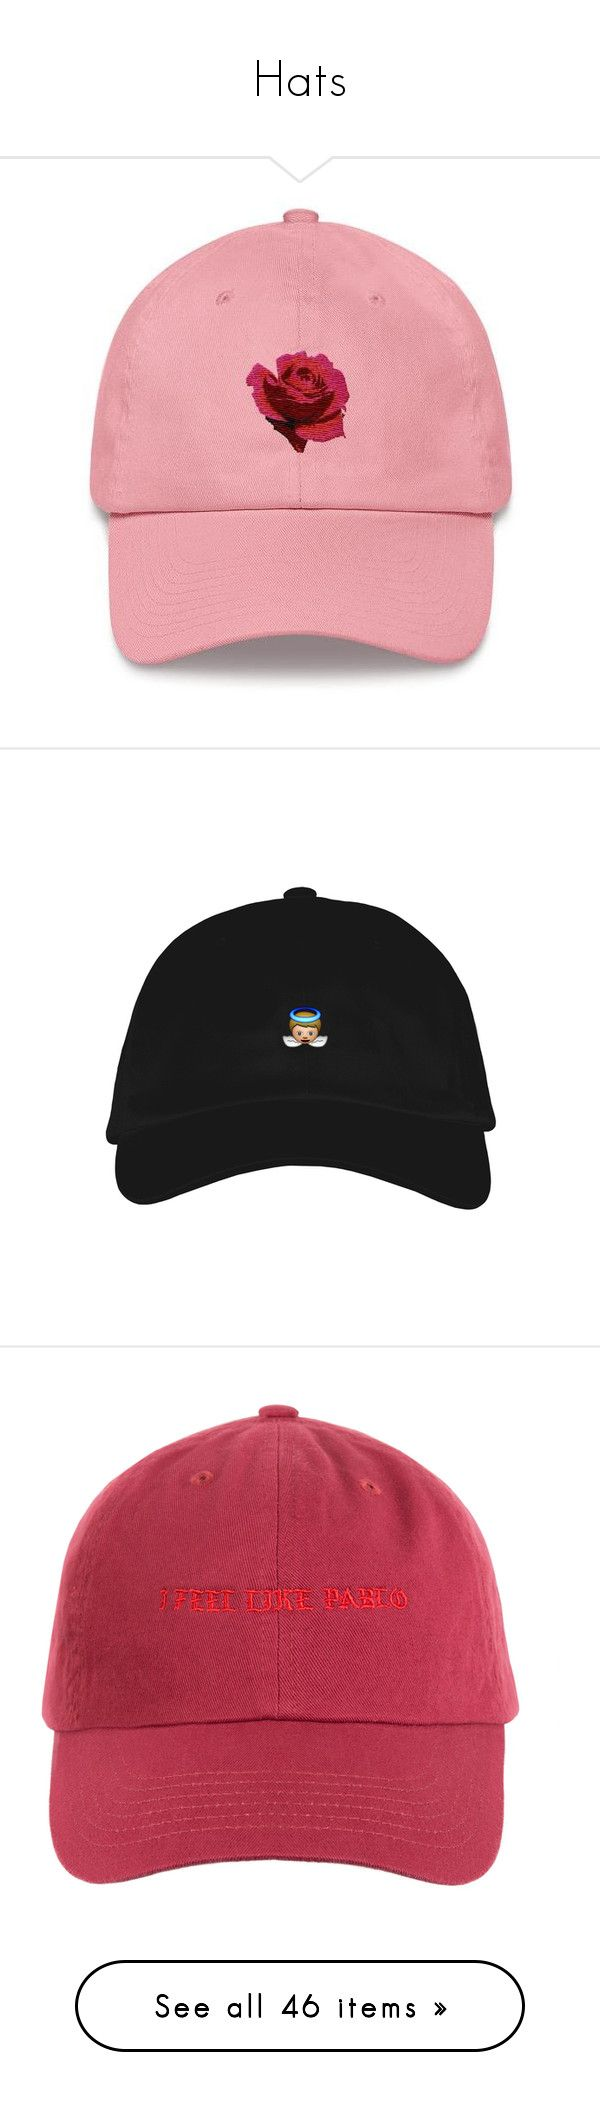 """Hats"" by nazarahwiggins on Polyvore featuring accessories, hats, sun visor, sun visor hat, rose hat, visor hats, 6 panel hat, caps, accessories - hats and dome cap"